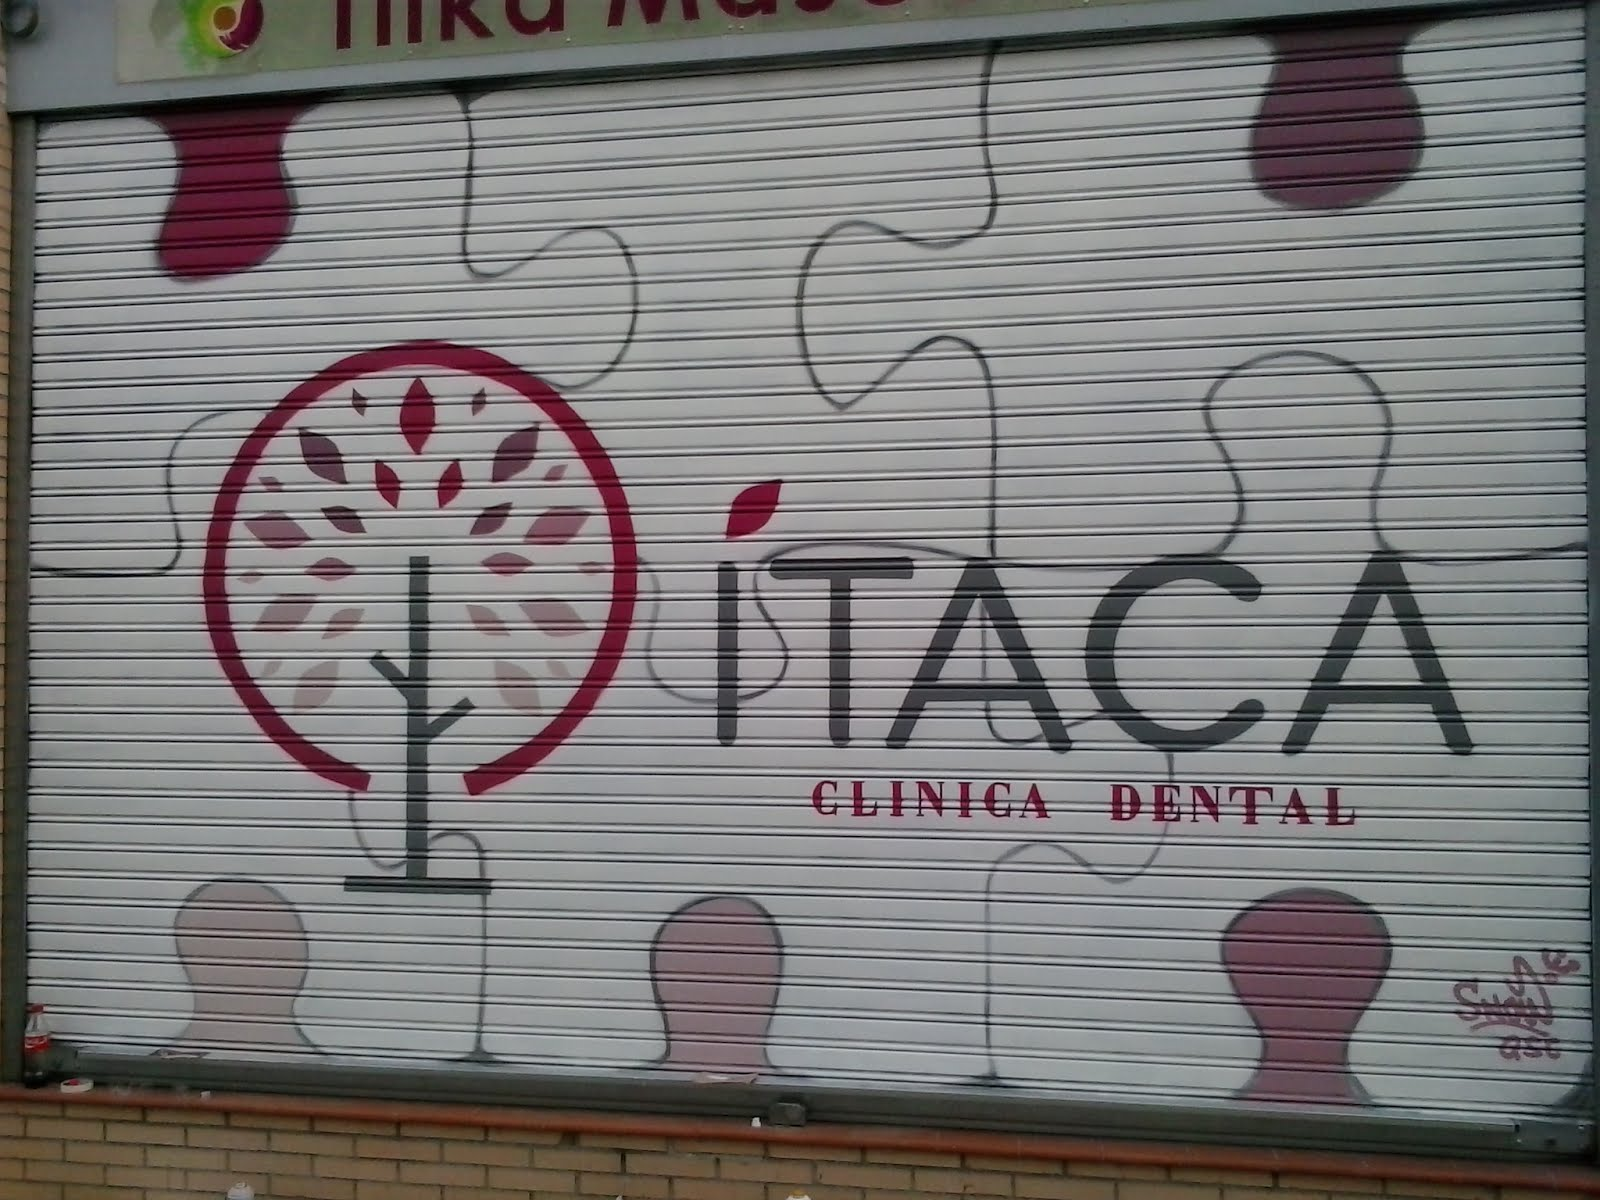 Itaca. clinica dental